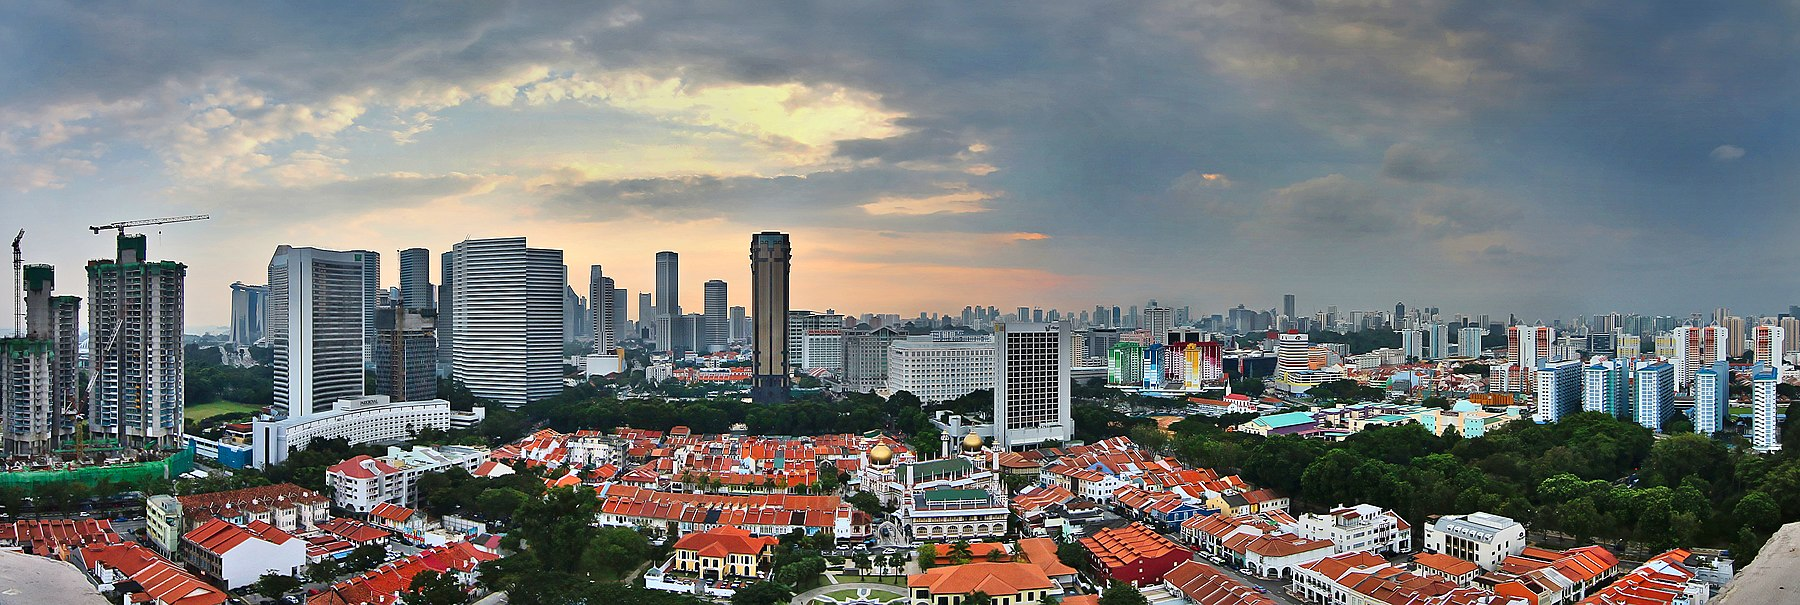 Singapore City skyline at sunset (8124277396).jpg